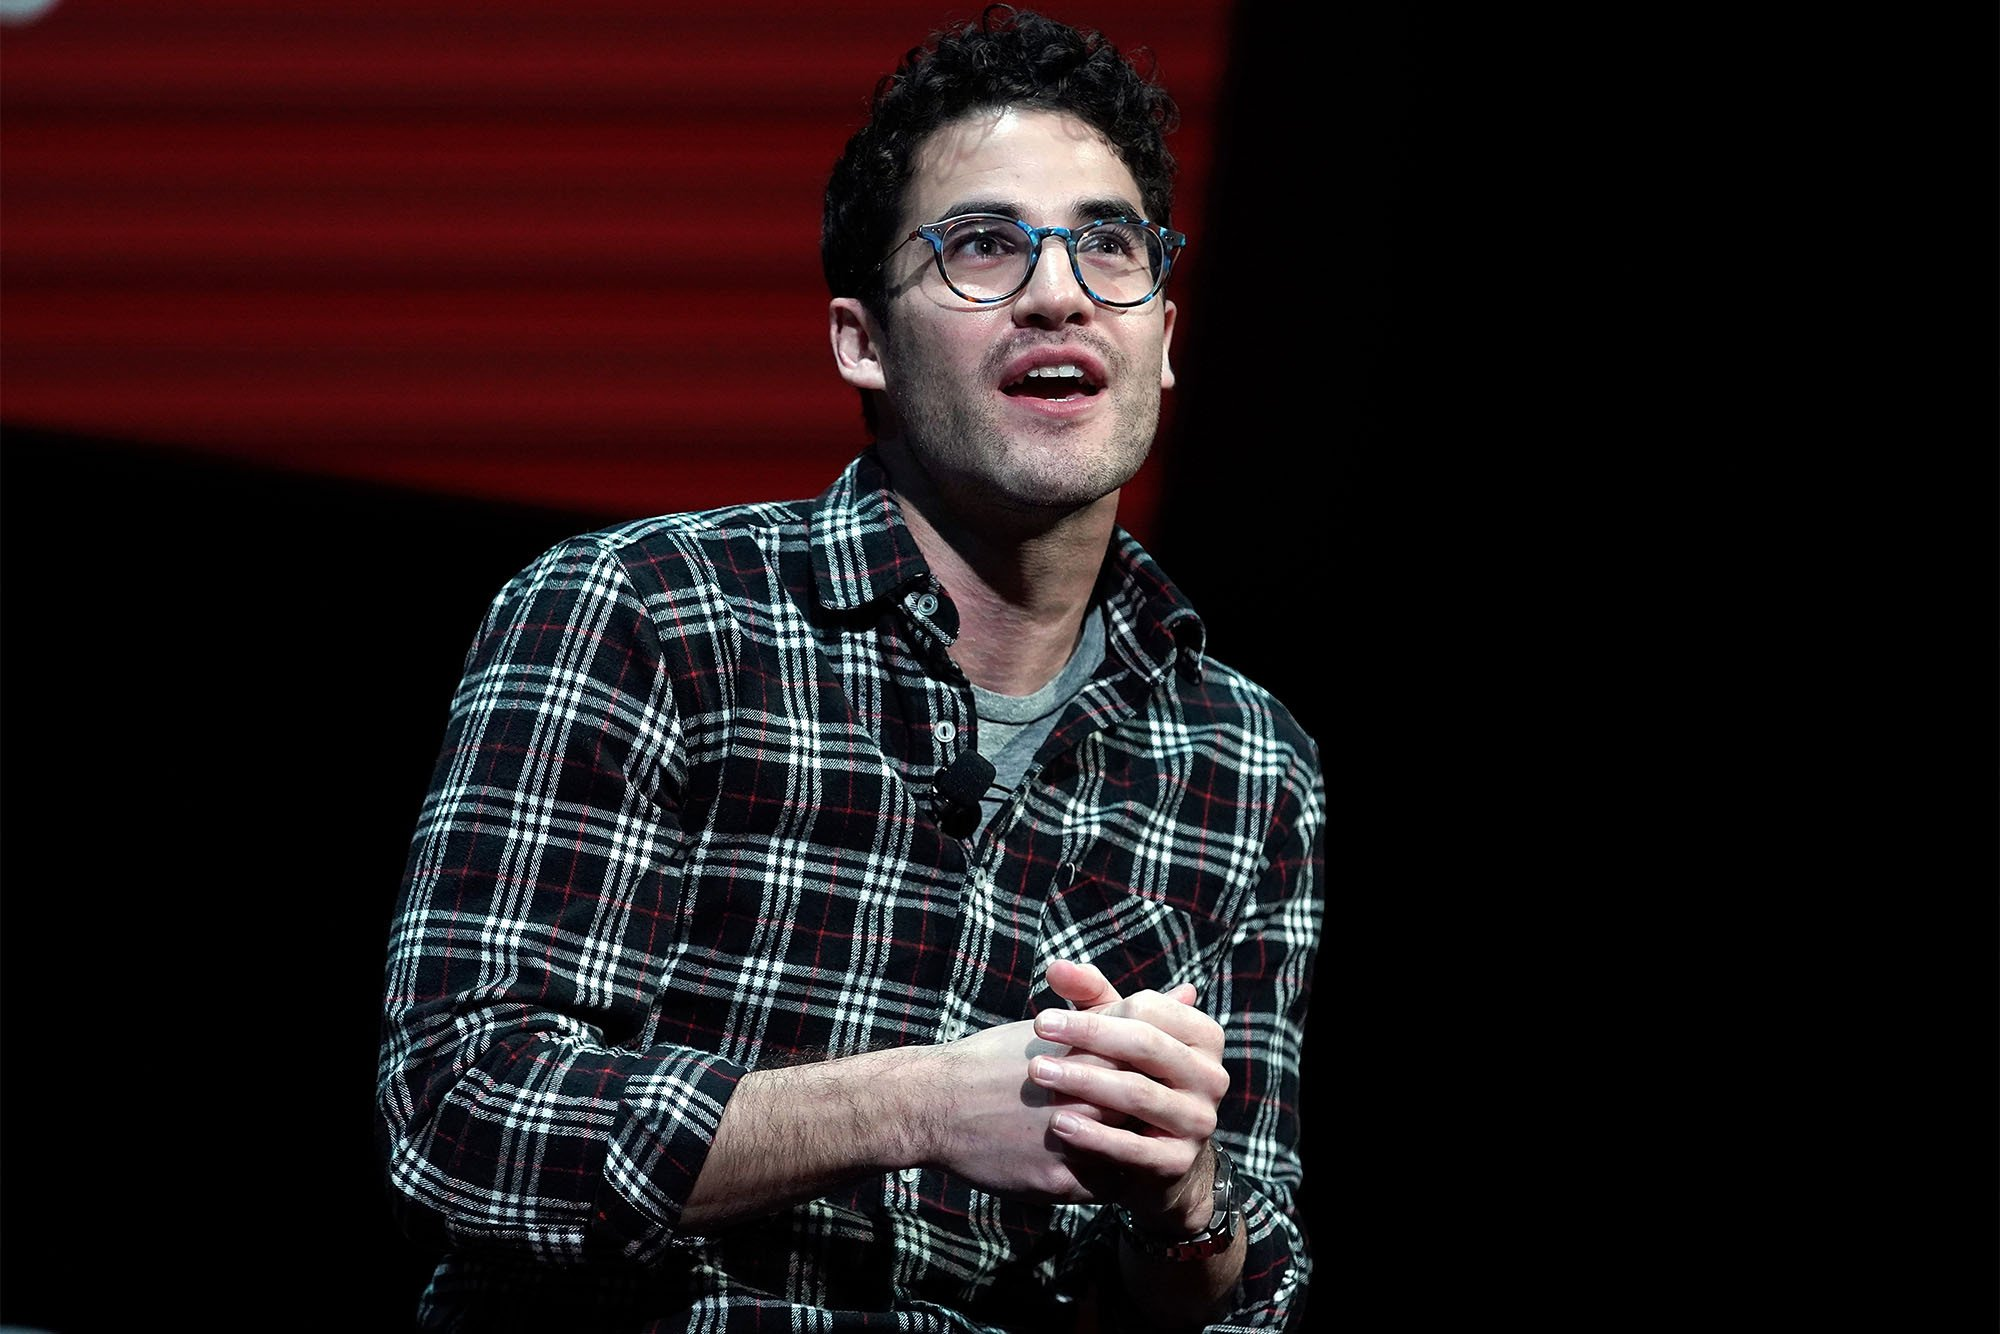 Darren Criss says he won't play gay characters anymore